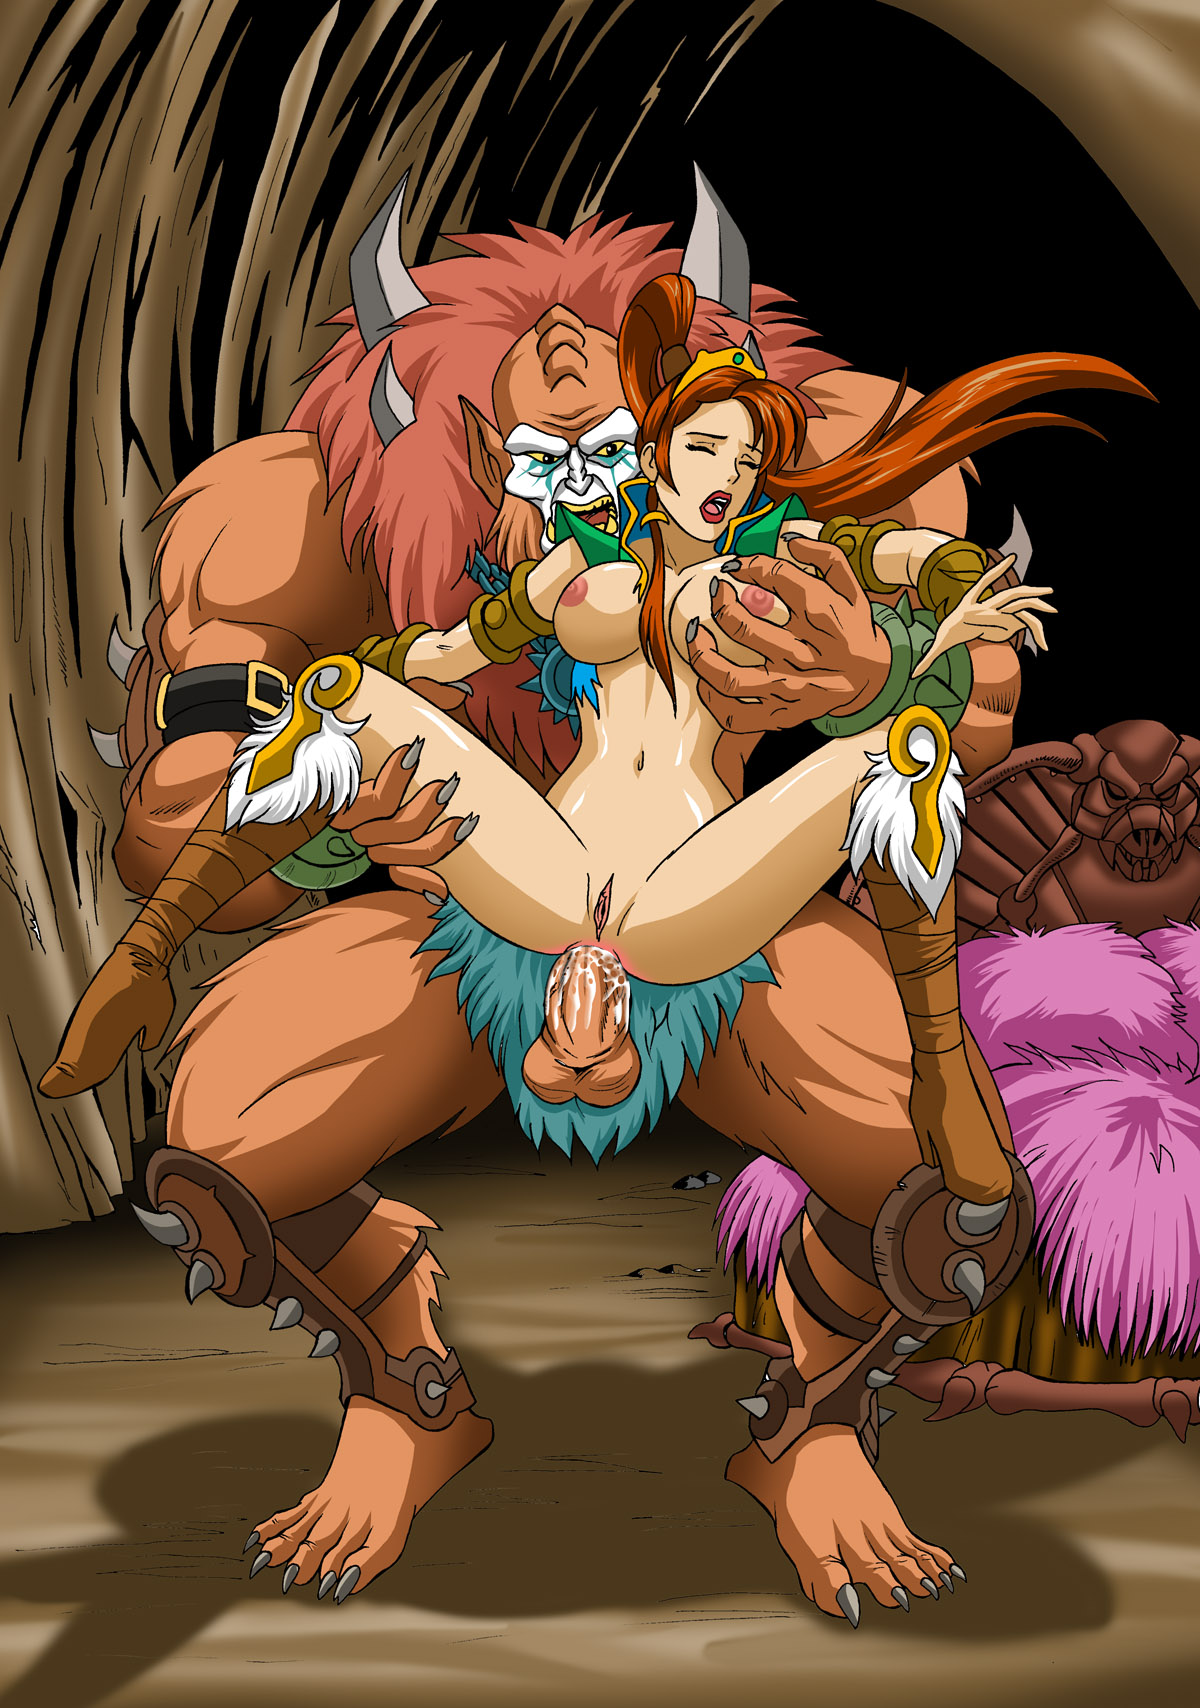 Monster fucking angel cartoon porn free download sexy scenes